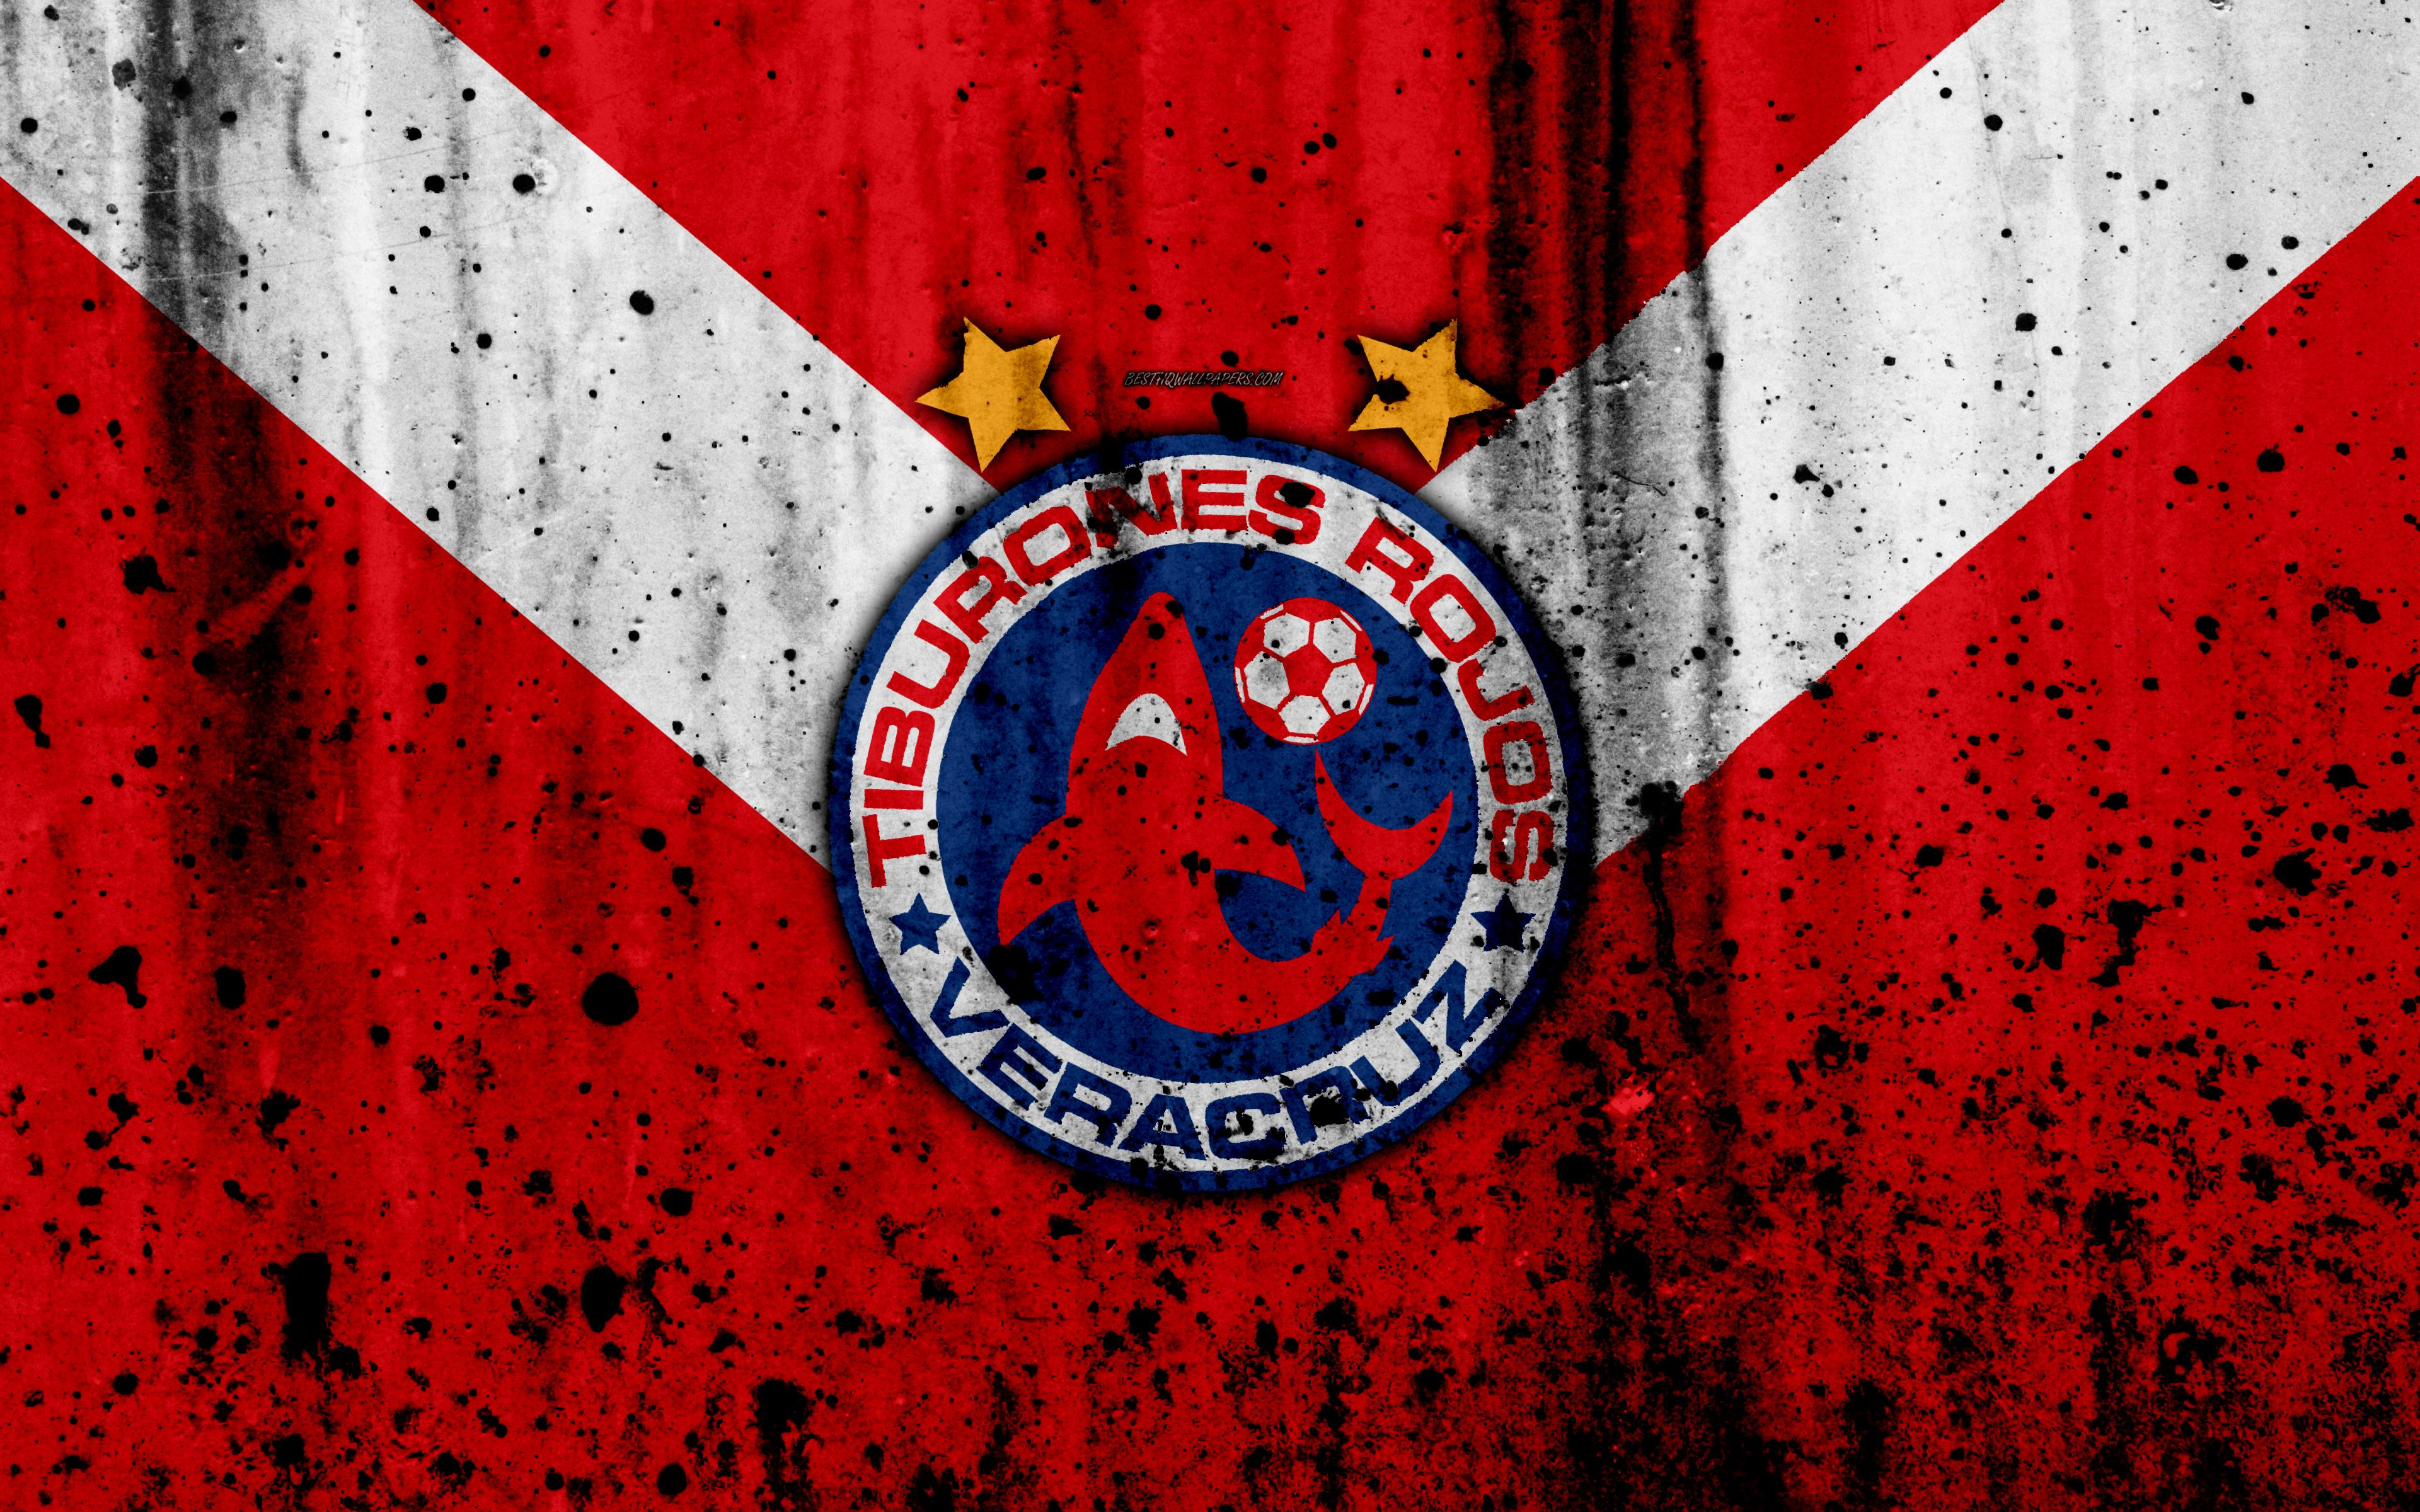 Download wallpapers Tiburones Rojos de Veracruz, Veracruz FC, 4k